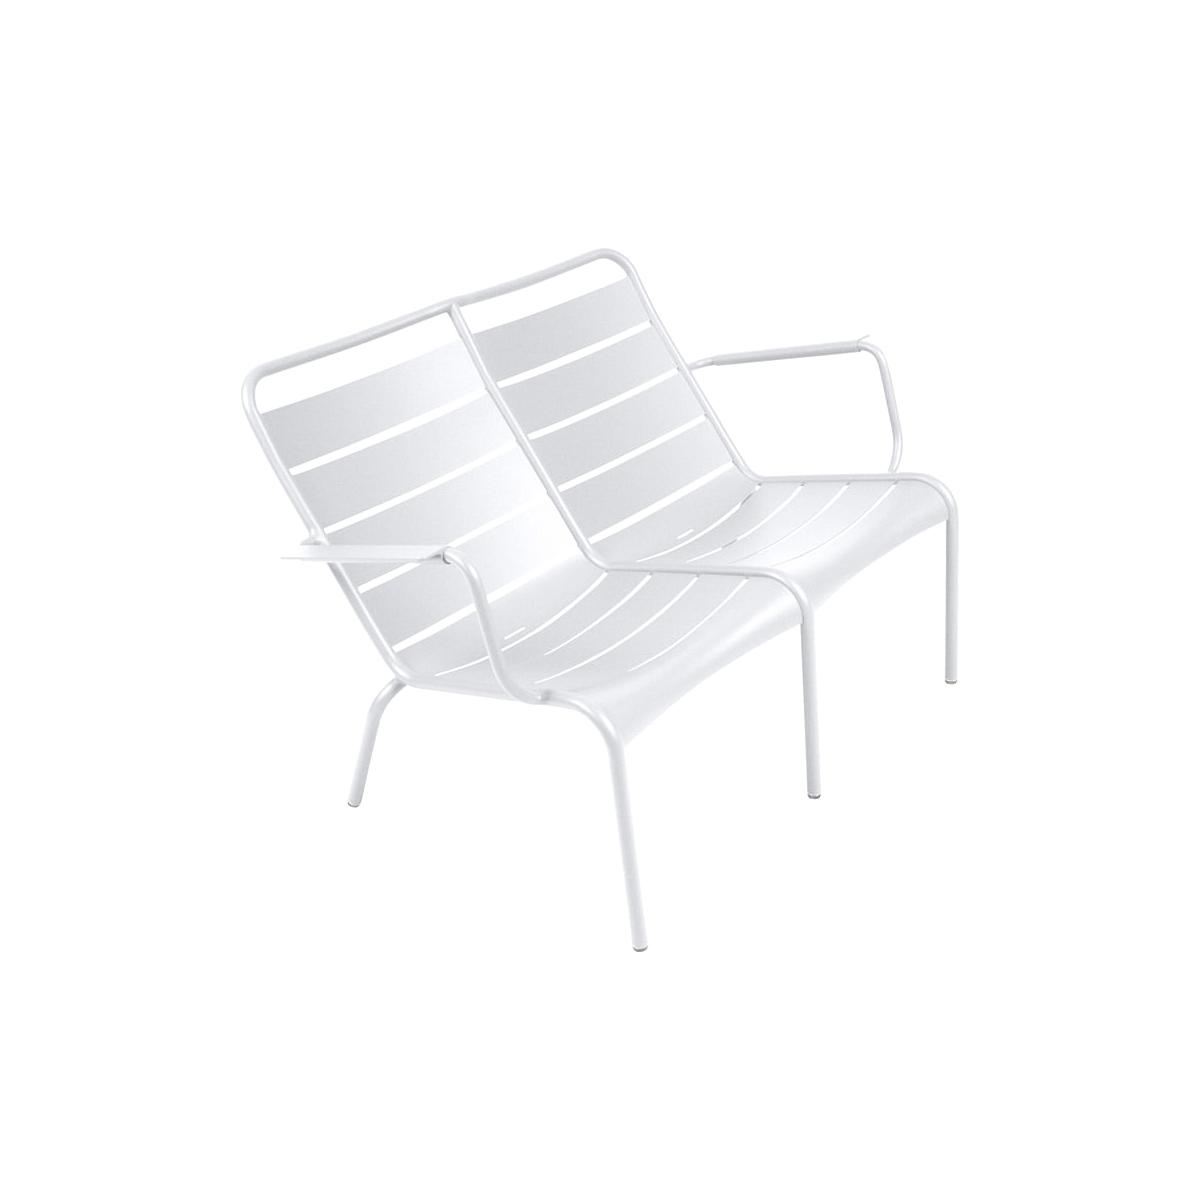 LUXEMBOURG  by Fermob Fauteuil bas duo Blanc coton